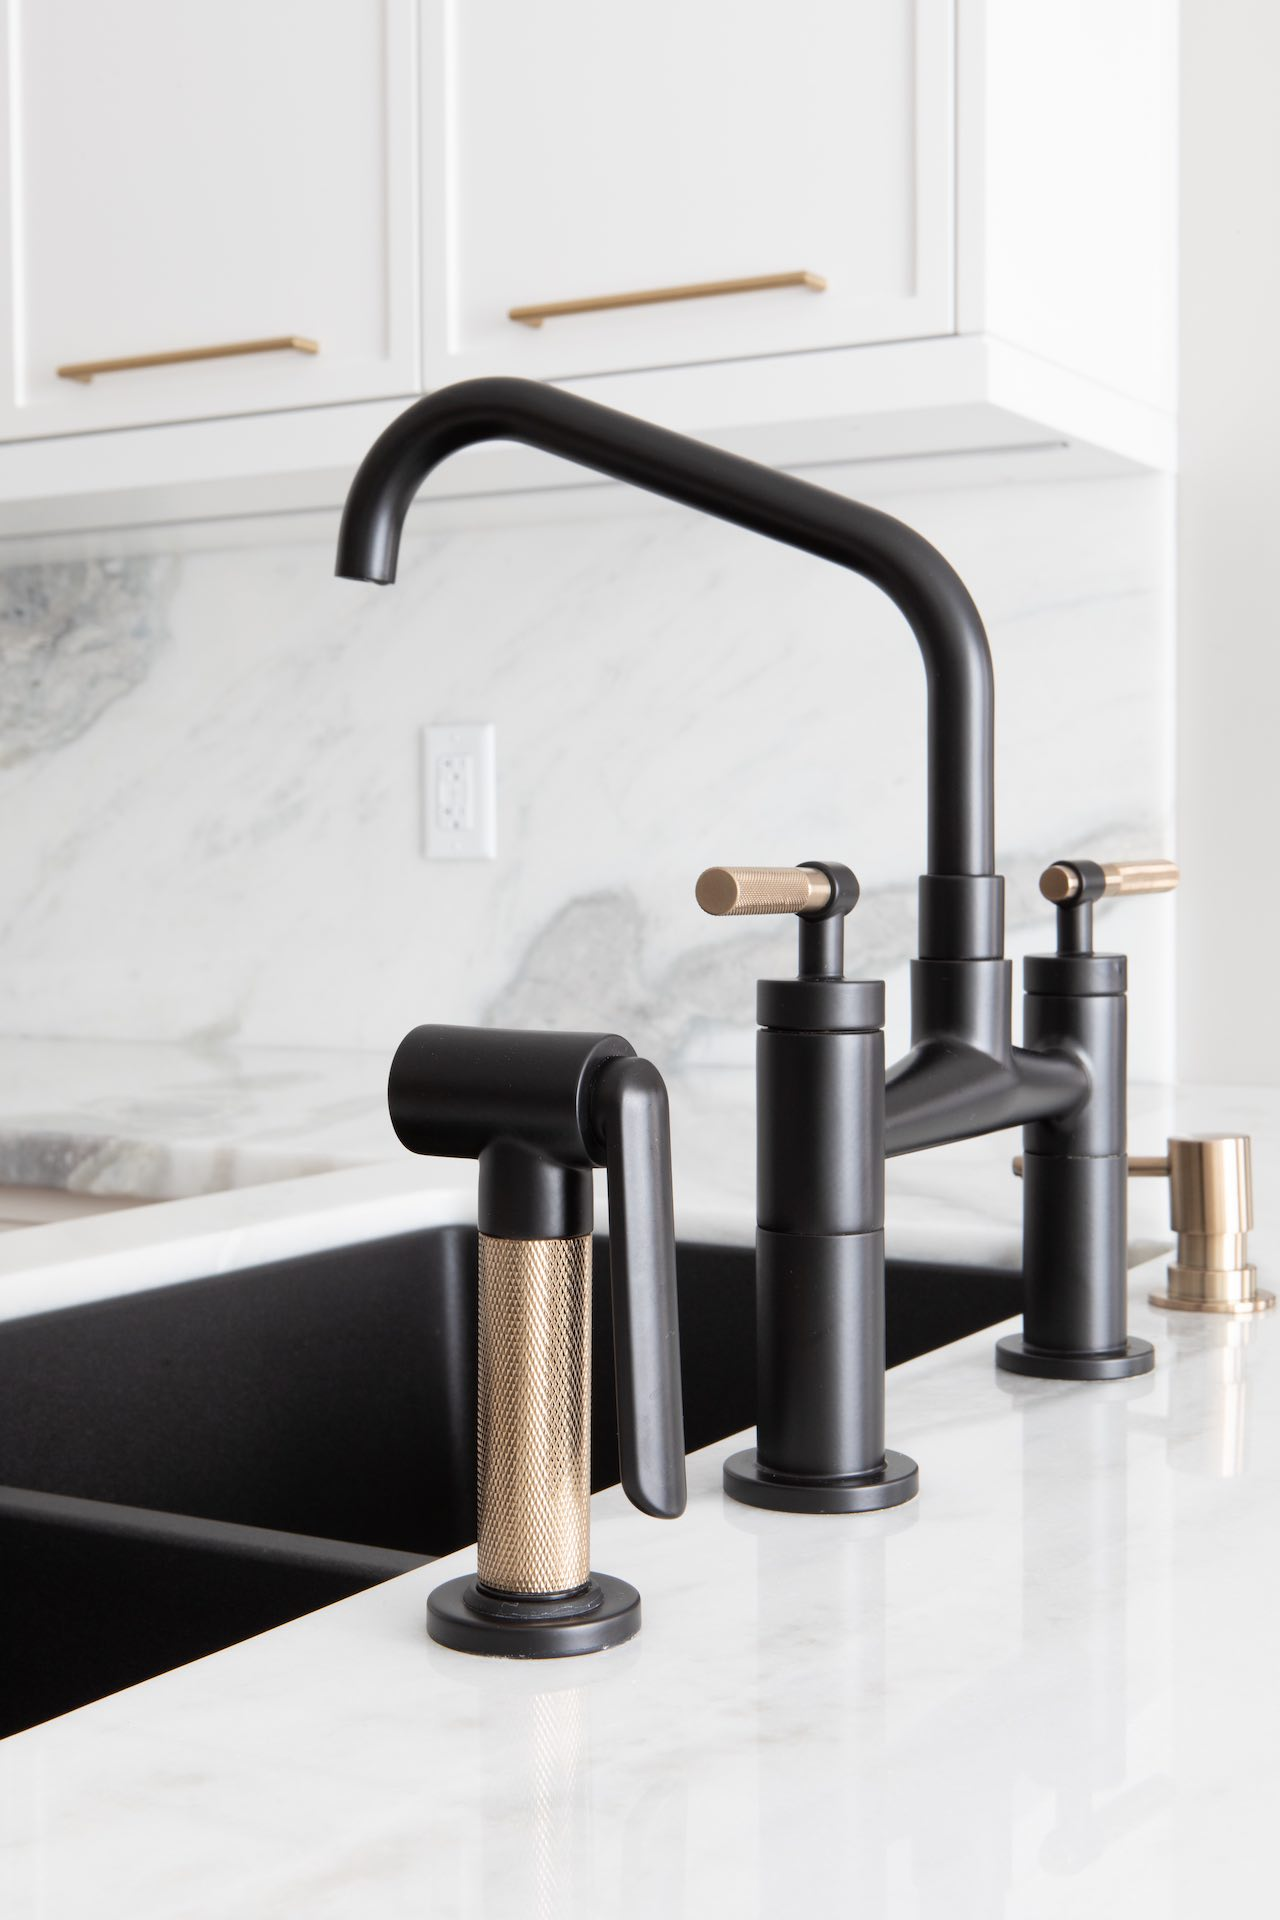 Black and gold kitchen faucet